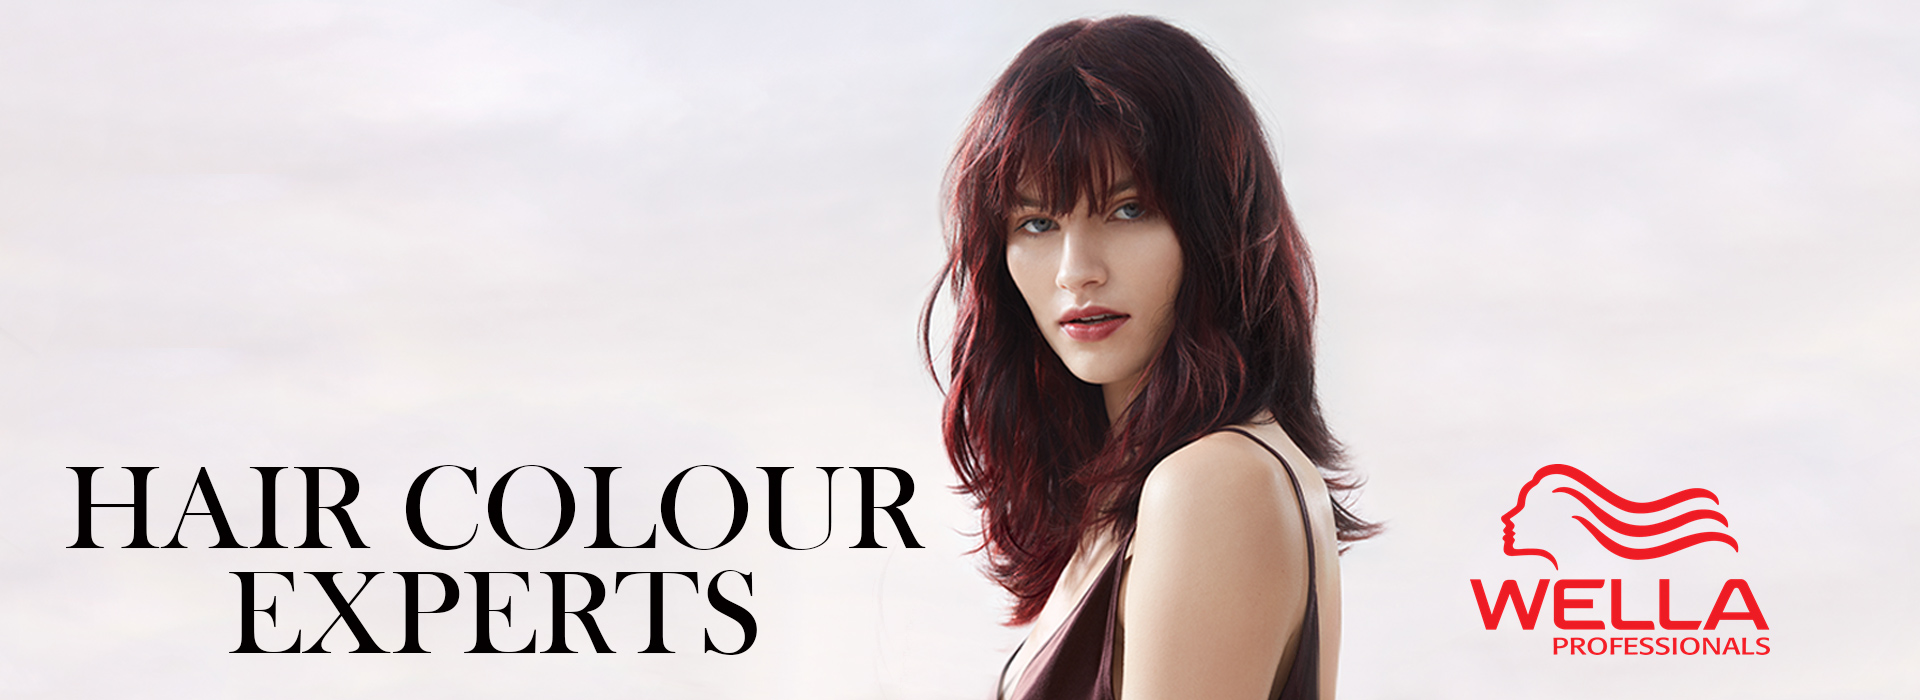 HAIR COLOUR Expert Salon in North Baddlesley, Southampton